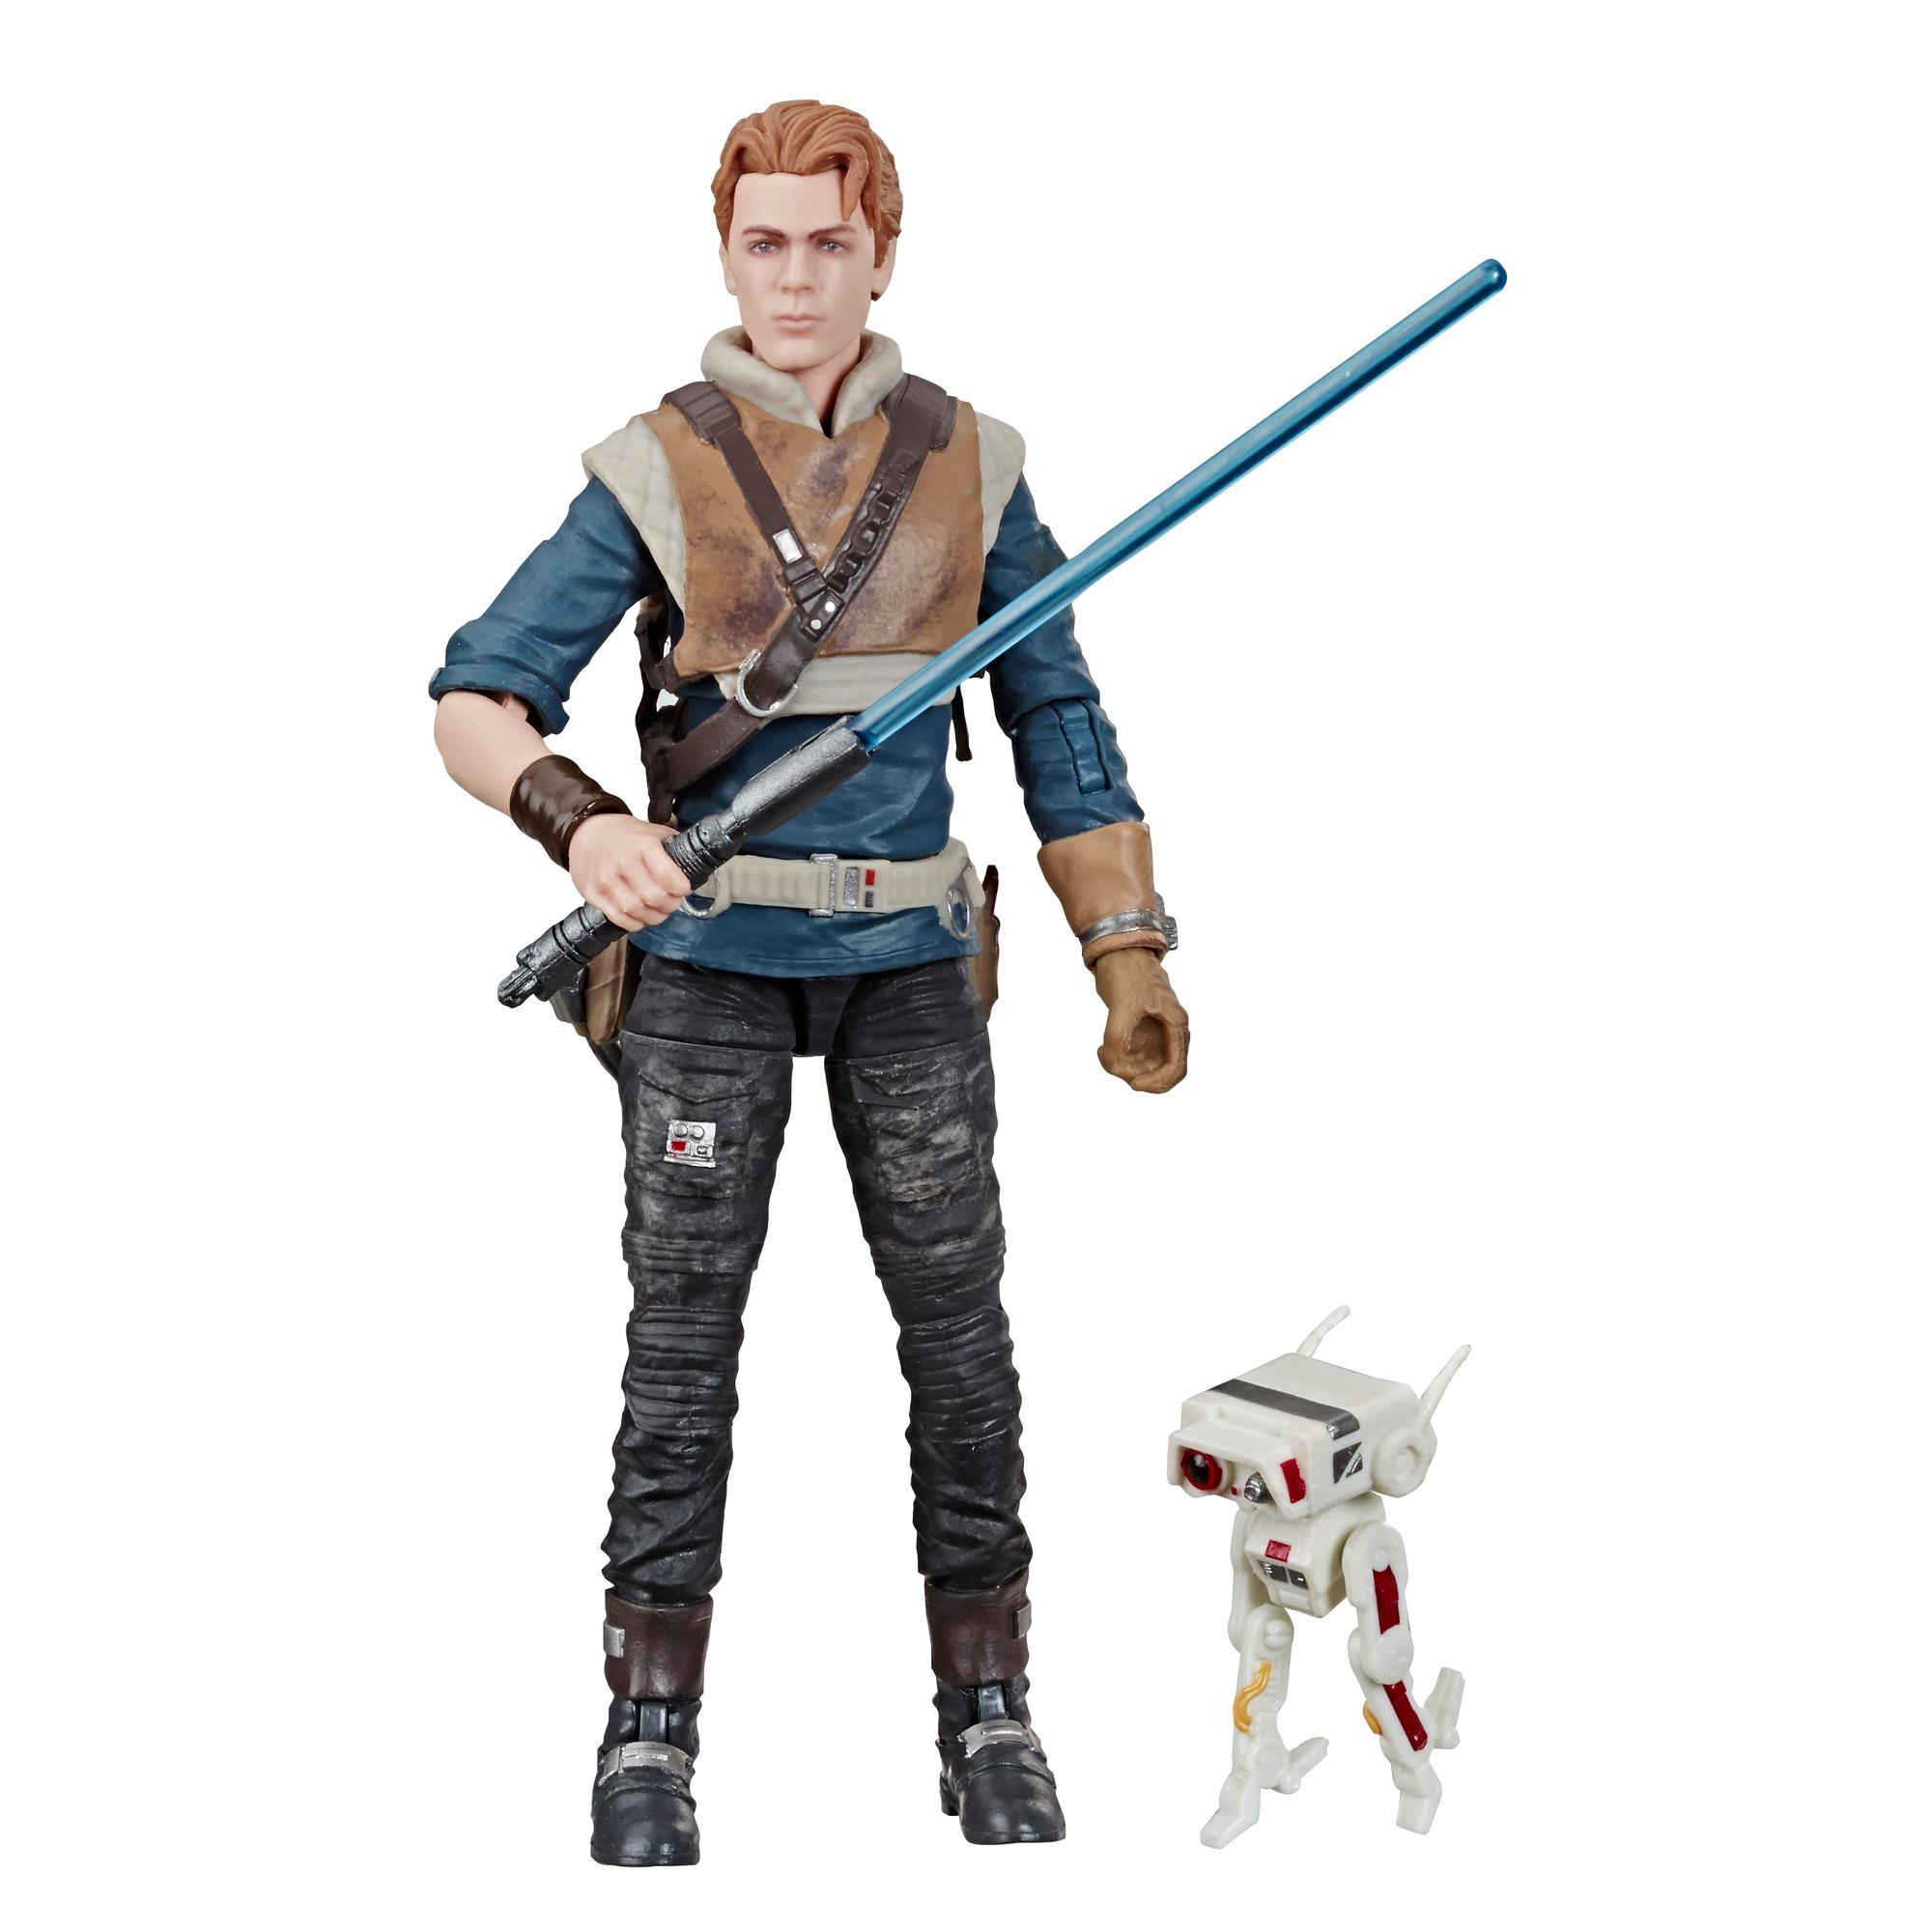 STAR WARS BLACK SERIES CAL KESTIS